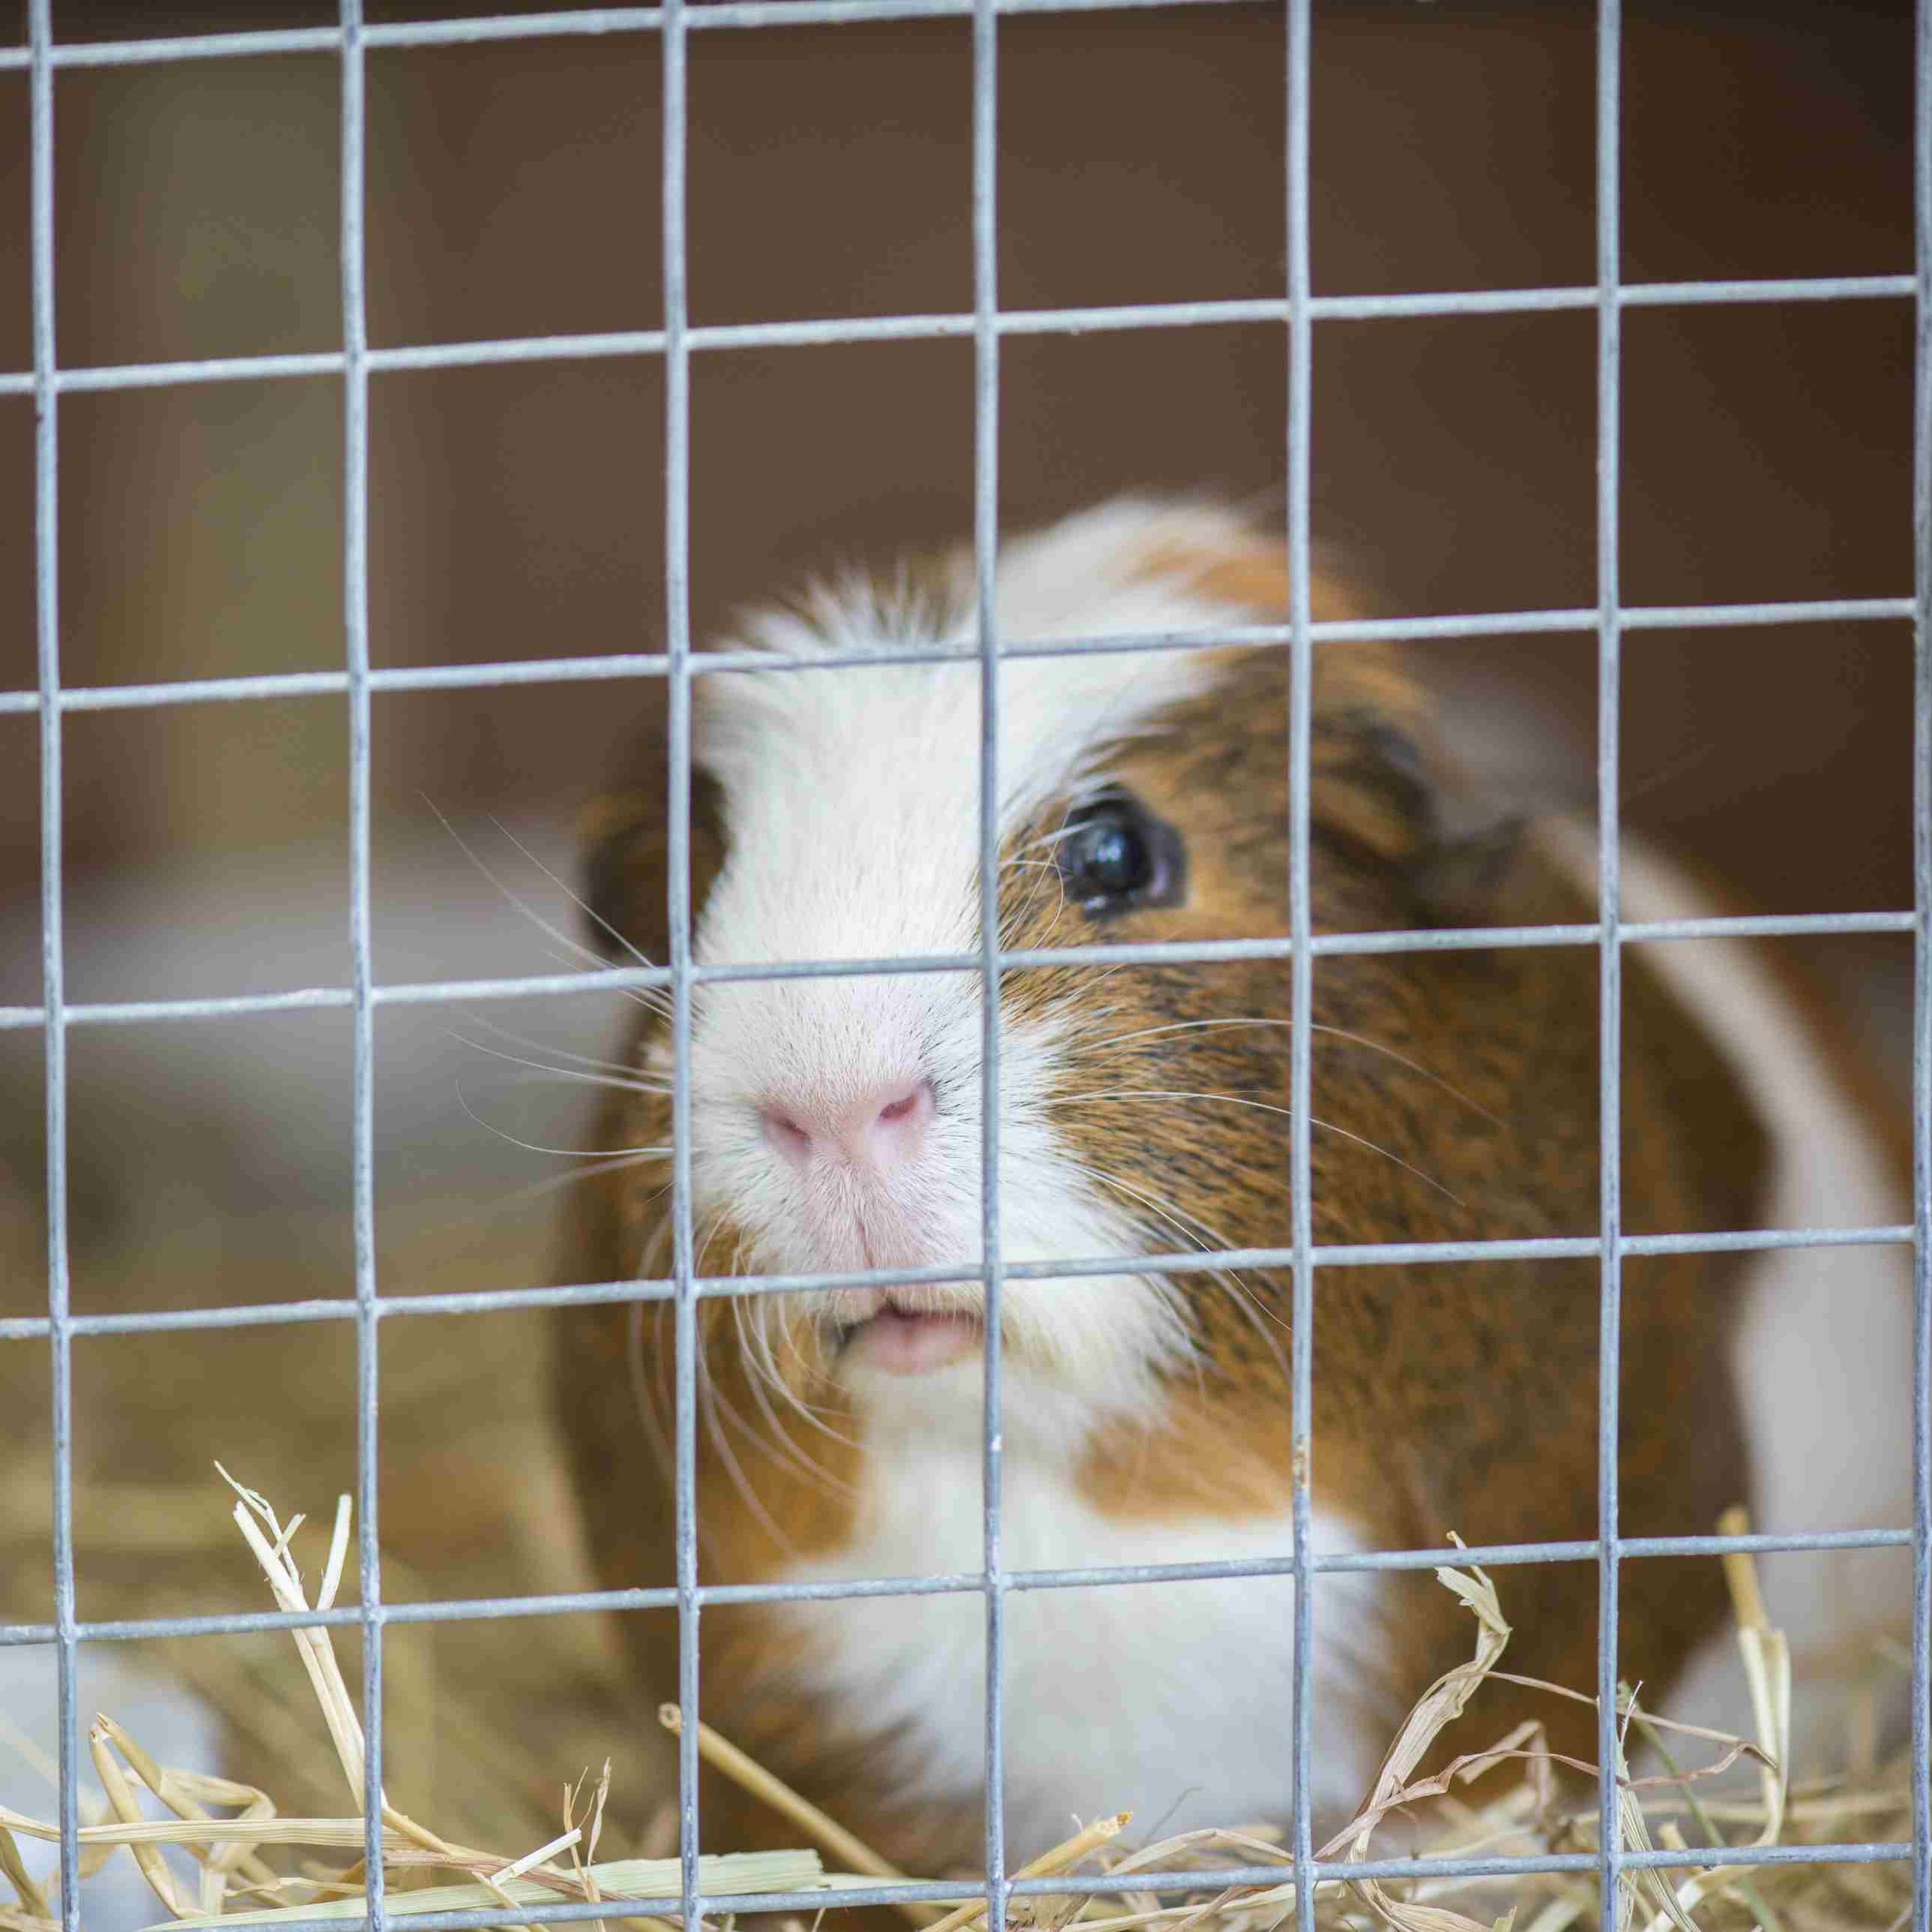 Guinea pig peering out from wire mesh cage